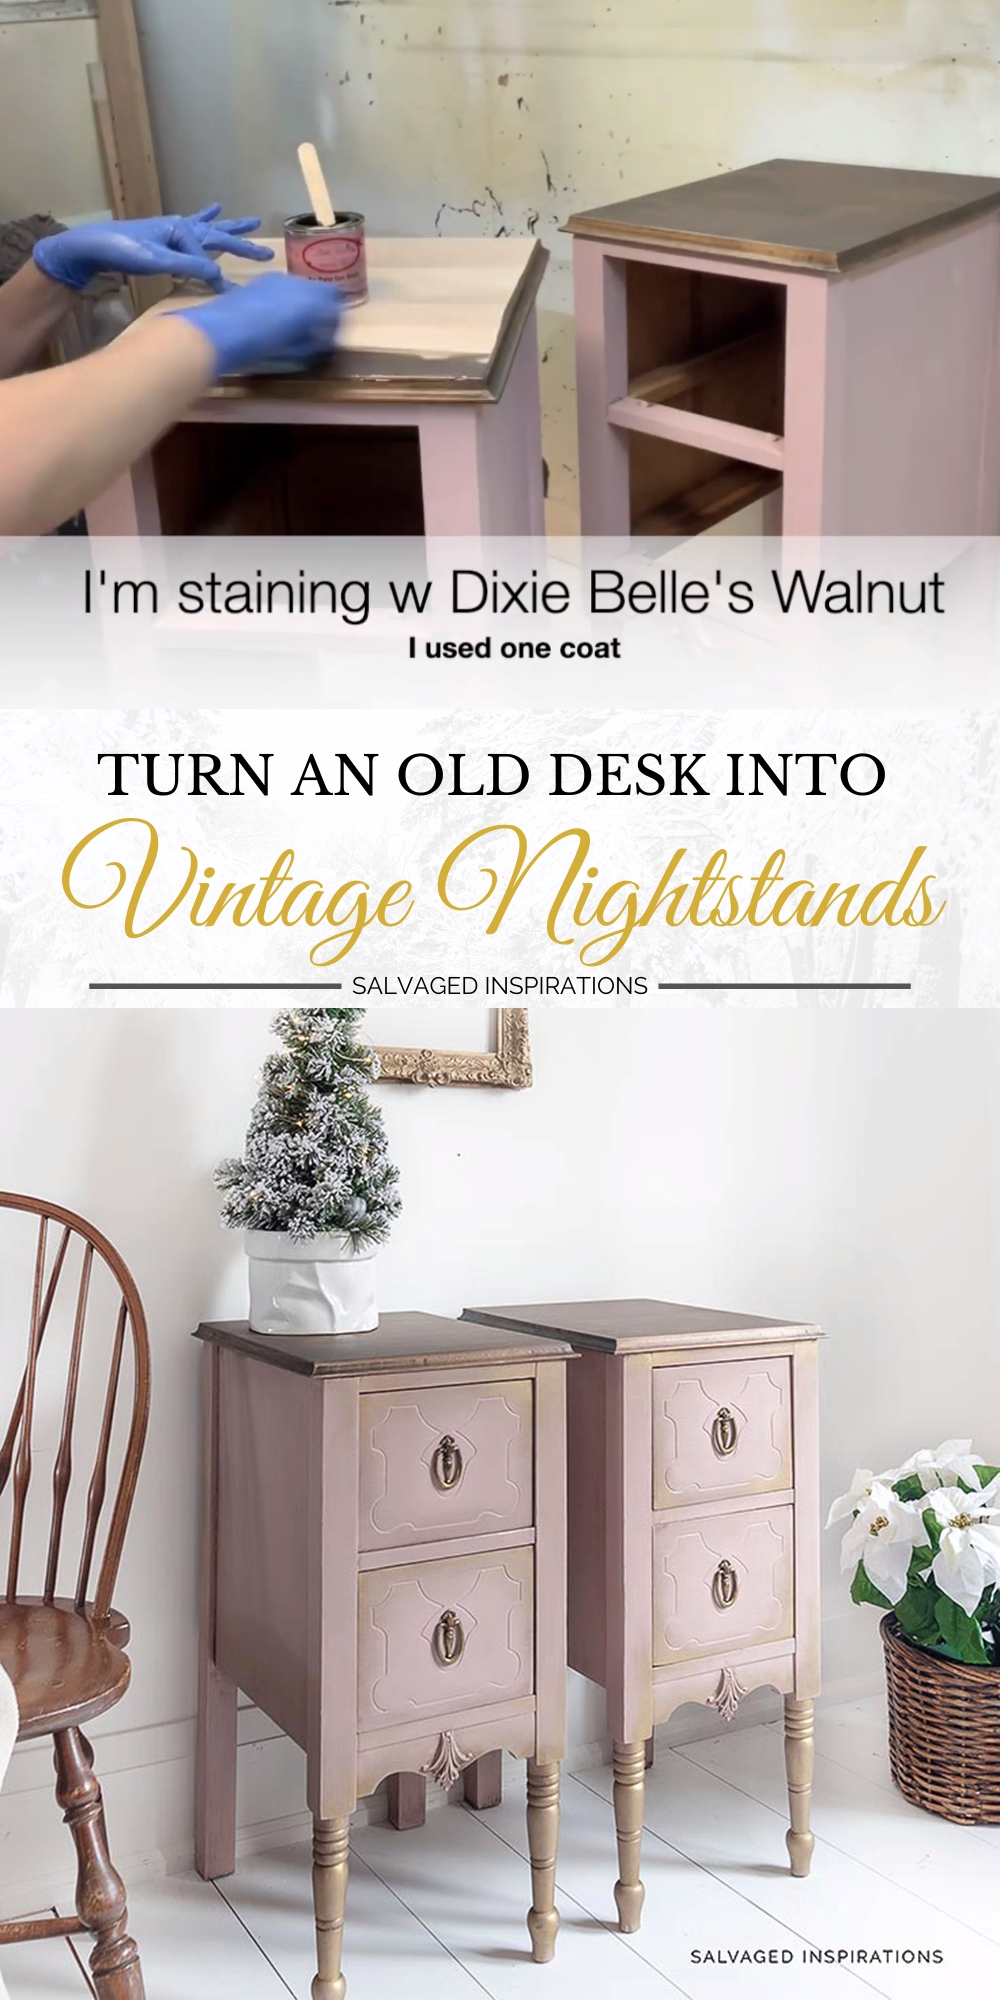 Turn An Old Desk into Vintage Nightstands -   17 diy projects Furniture thrift stores ideas